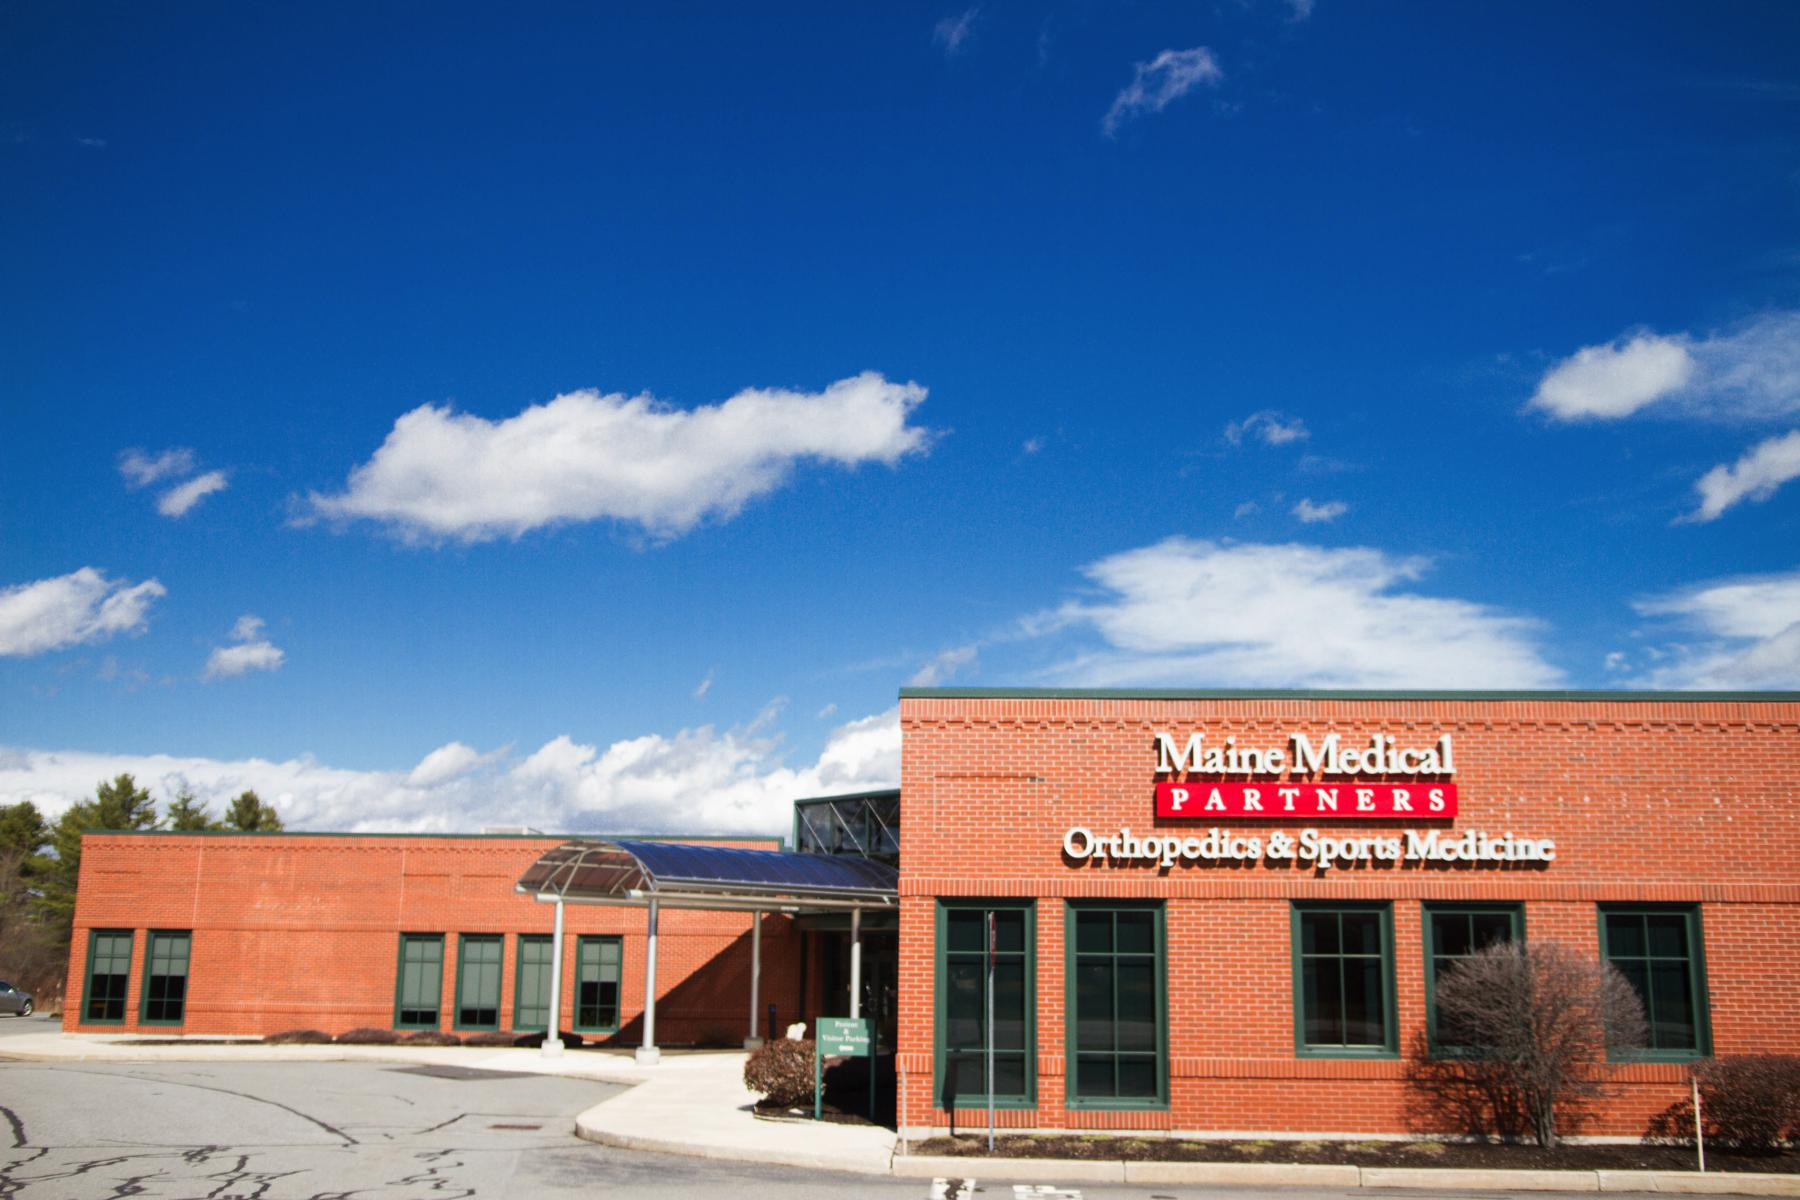 Maine Medical Partners Orthopedics & Sports Medicine 119 Gannett Drive, South Portland, ME